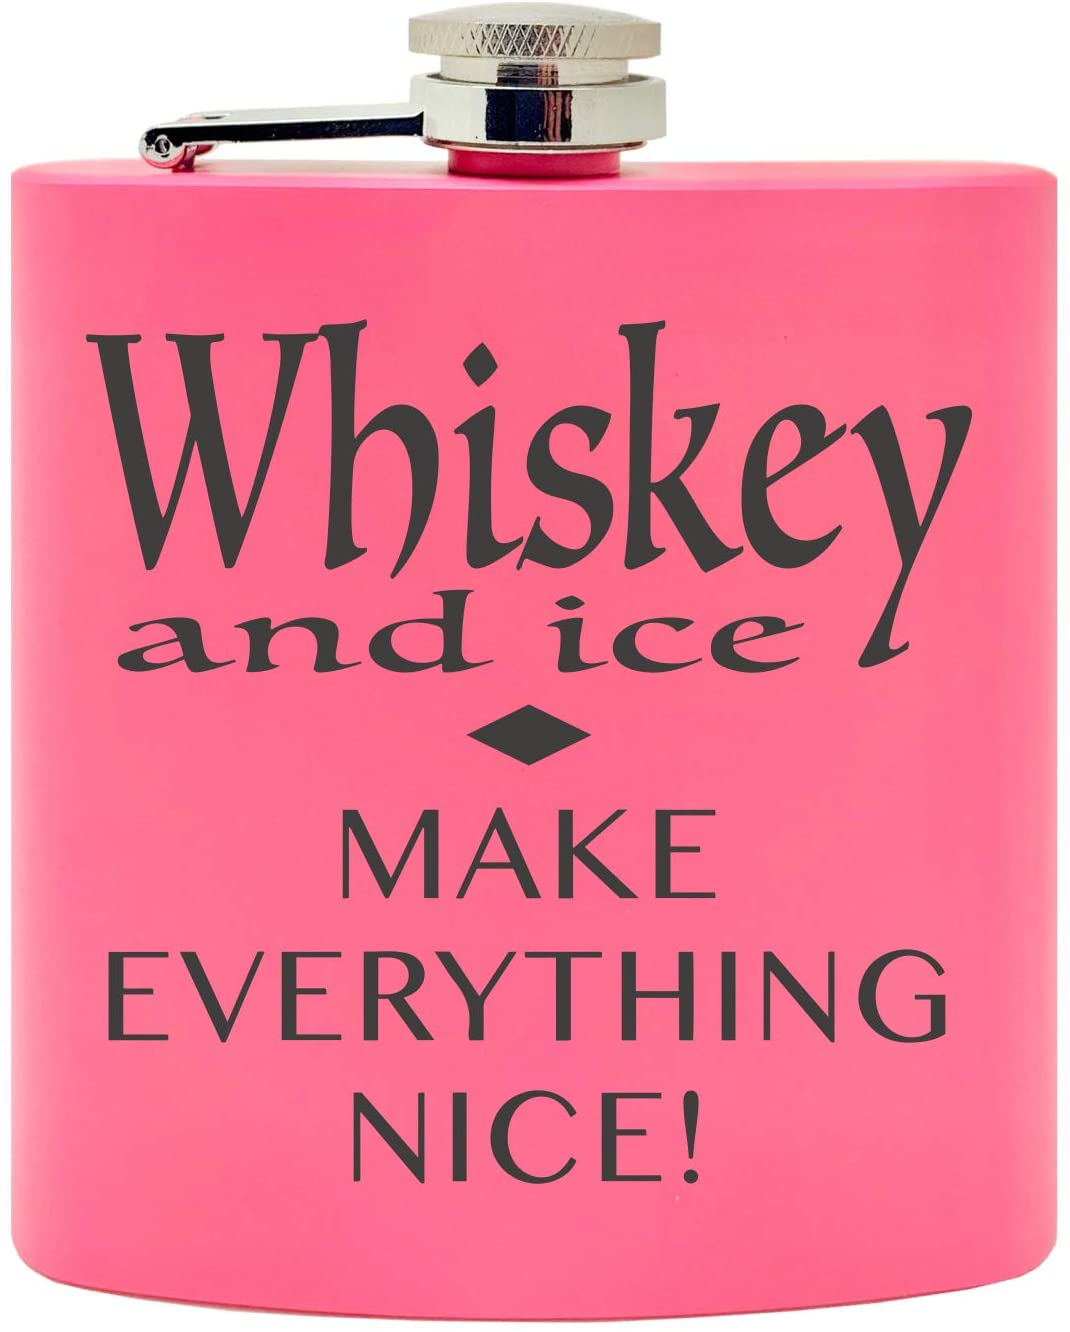 Whiskey and Ice Make Everything Nice Drink Loving Design Custom Printed Stainless Steel Alcohol Hip Flask, 6 Oz. Pink